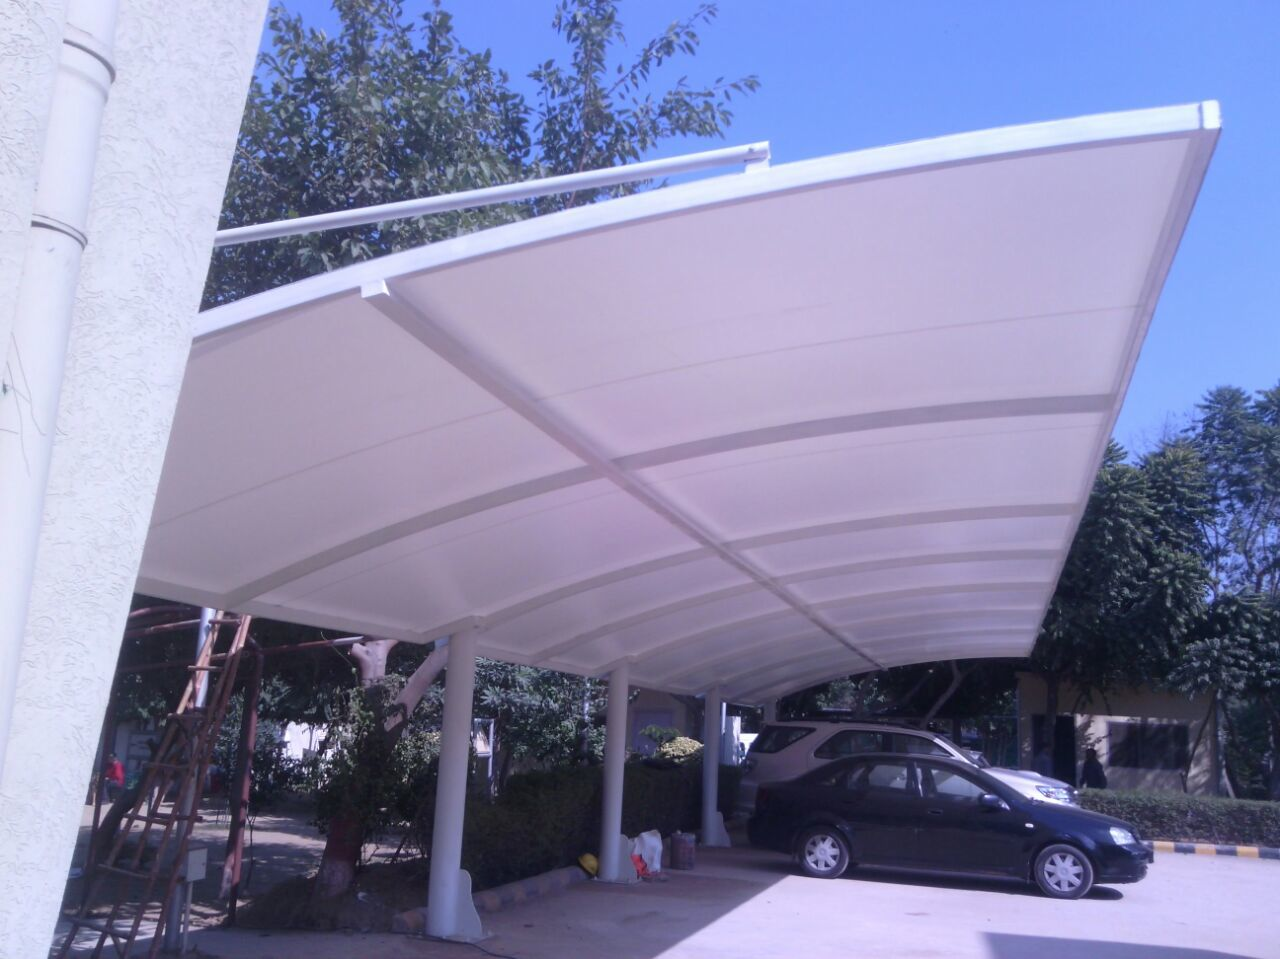 Mp Vehicle Car Parking Shed Shade Structure